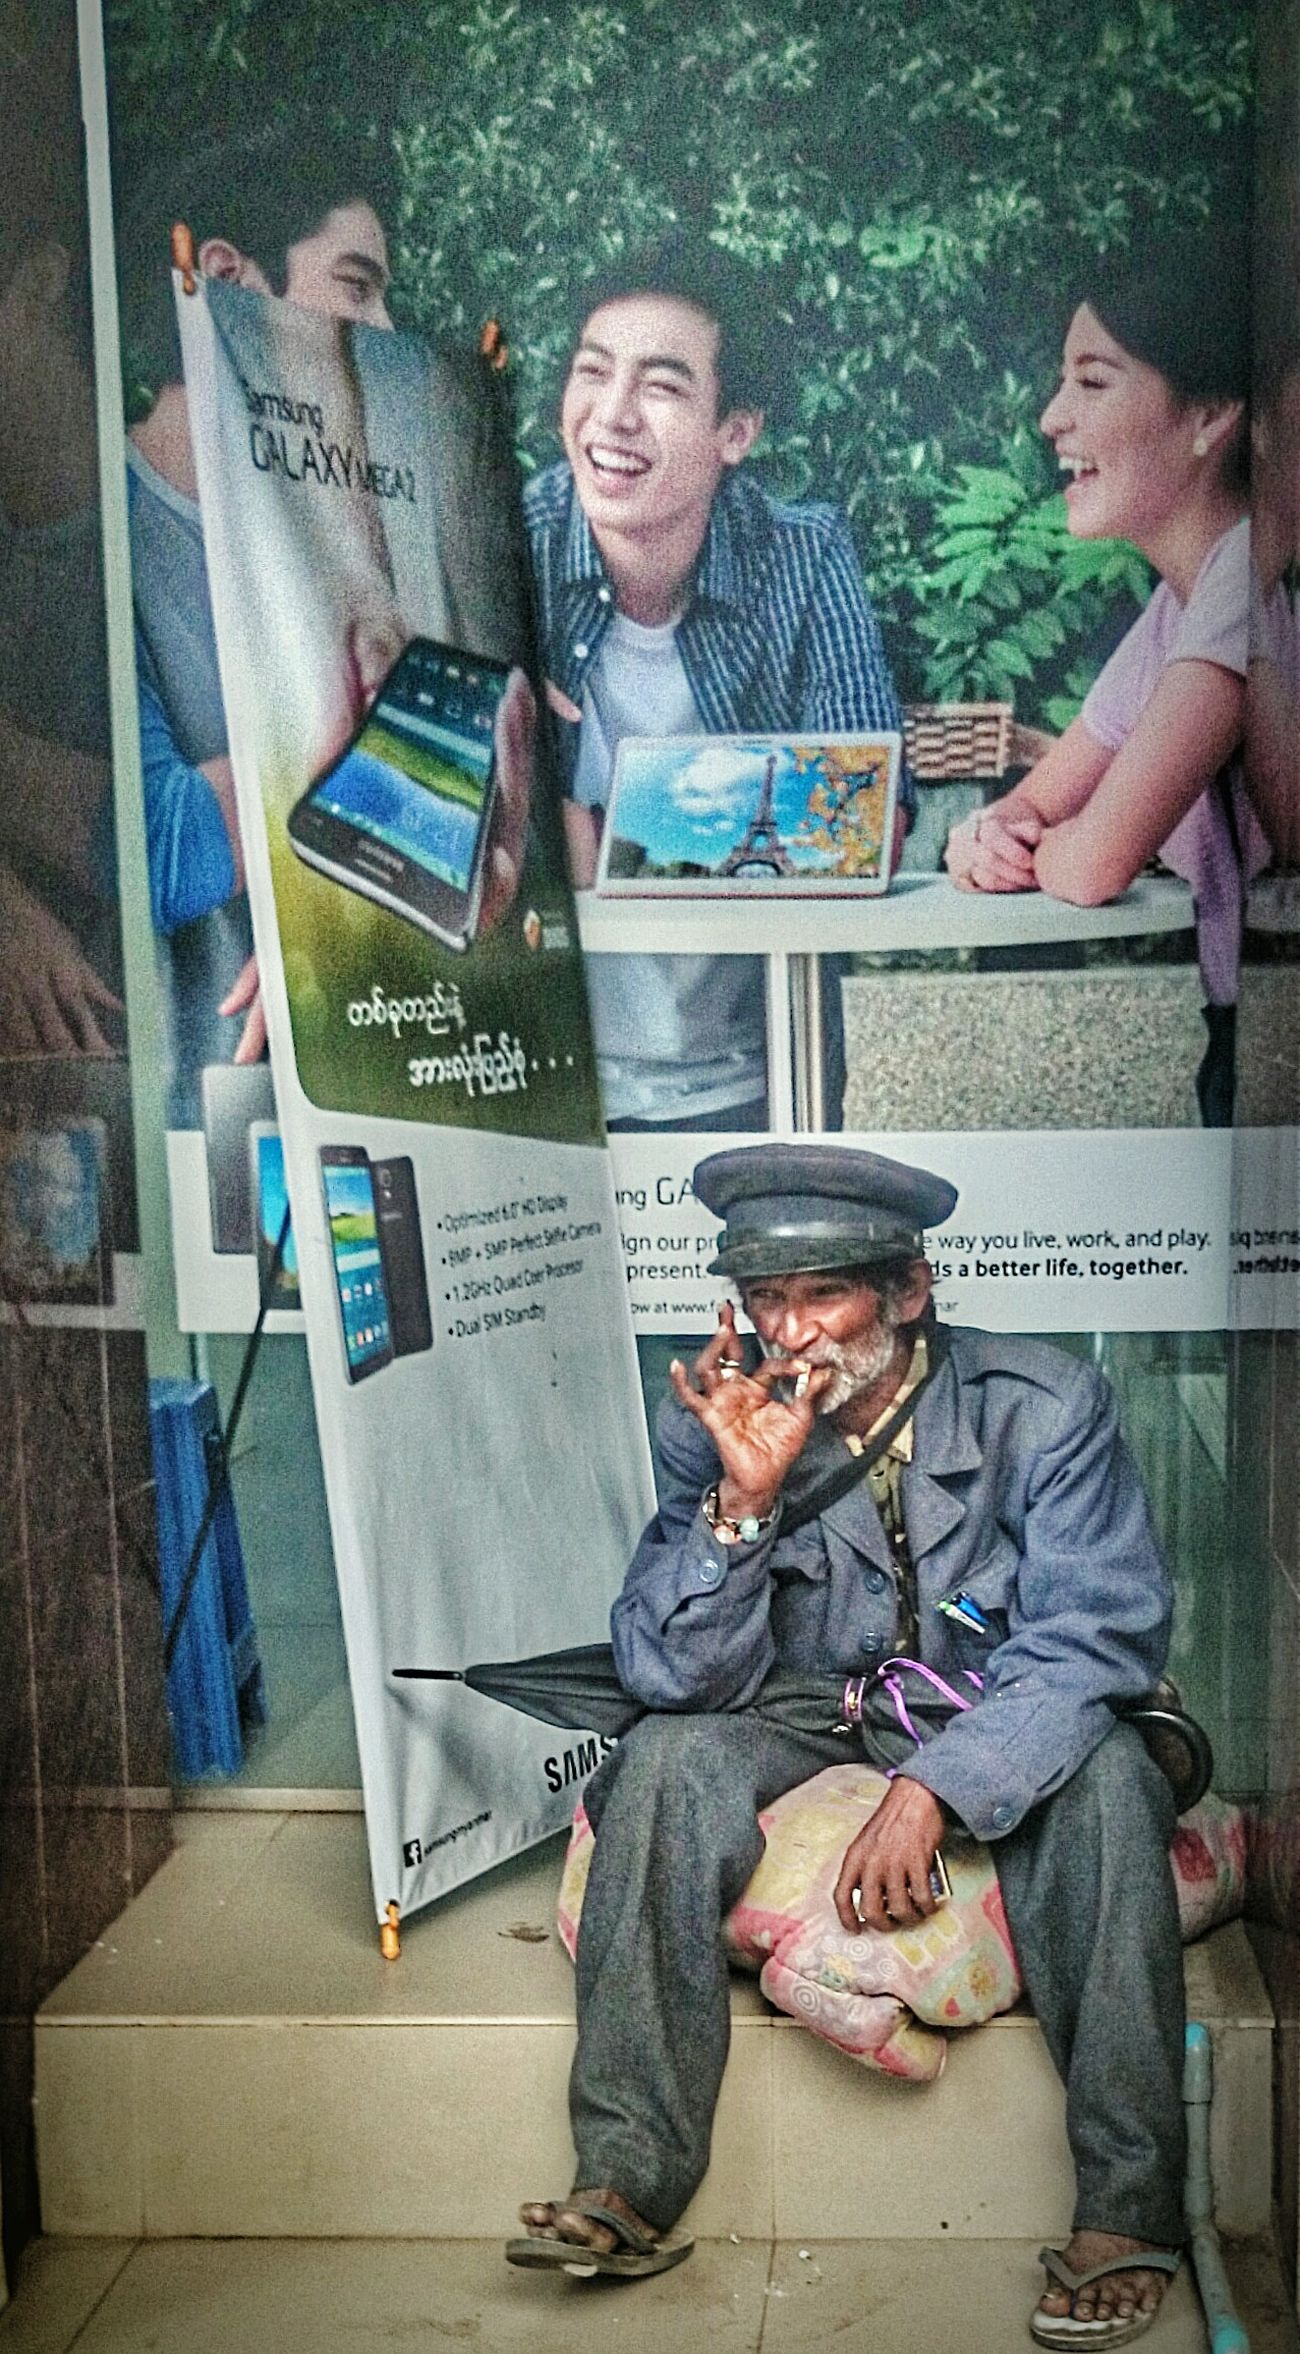 Reality versus virtual reality. Streetphotography Travel Photography Tadaa Community Tour Eiffel ? RePicture Ageing Asian Culture RePicture Travel The Street Photographer - 2015 EyeEm Awards Urban Lifestyle